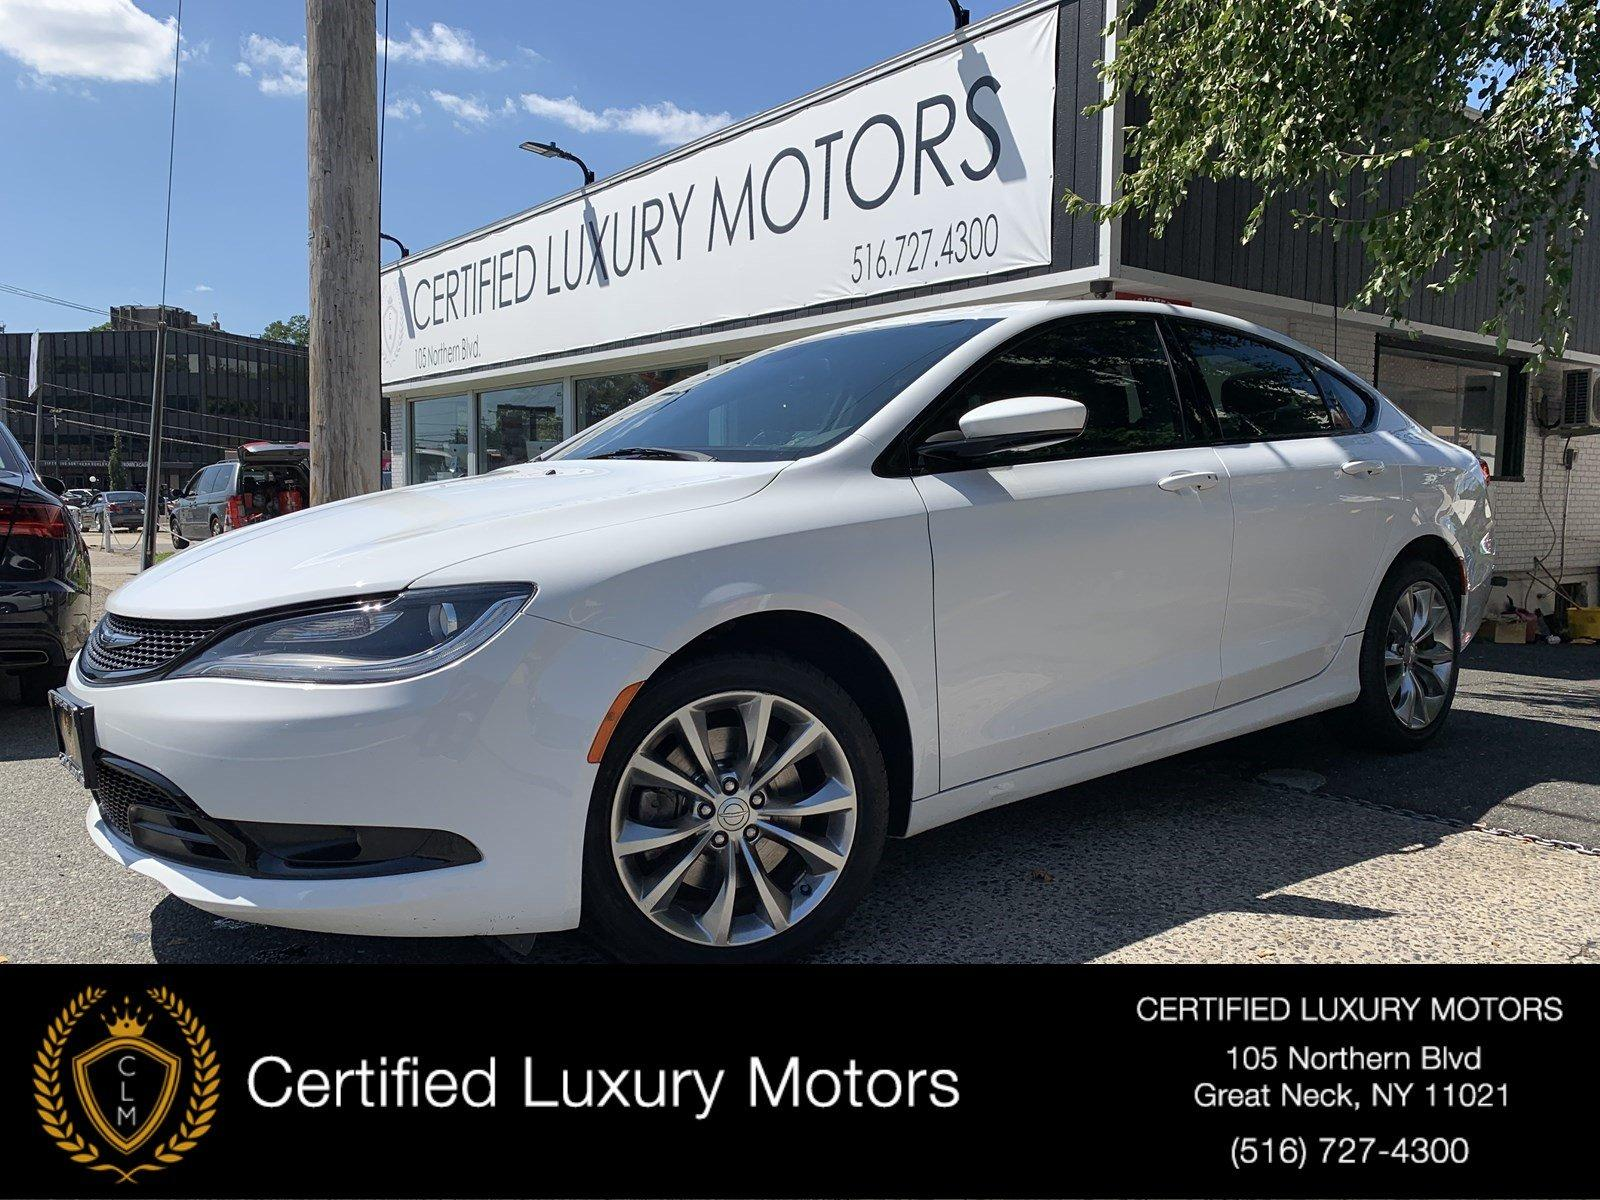 Used-2015-Chrysler-200-S-(Leather,Navi,Backup-Cam)